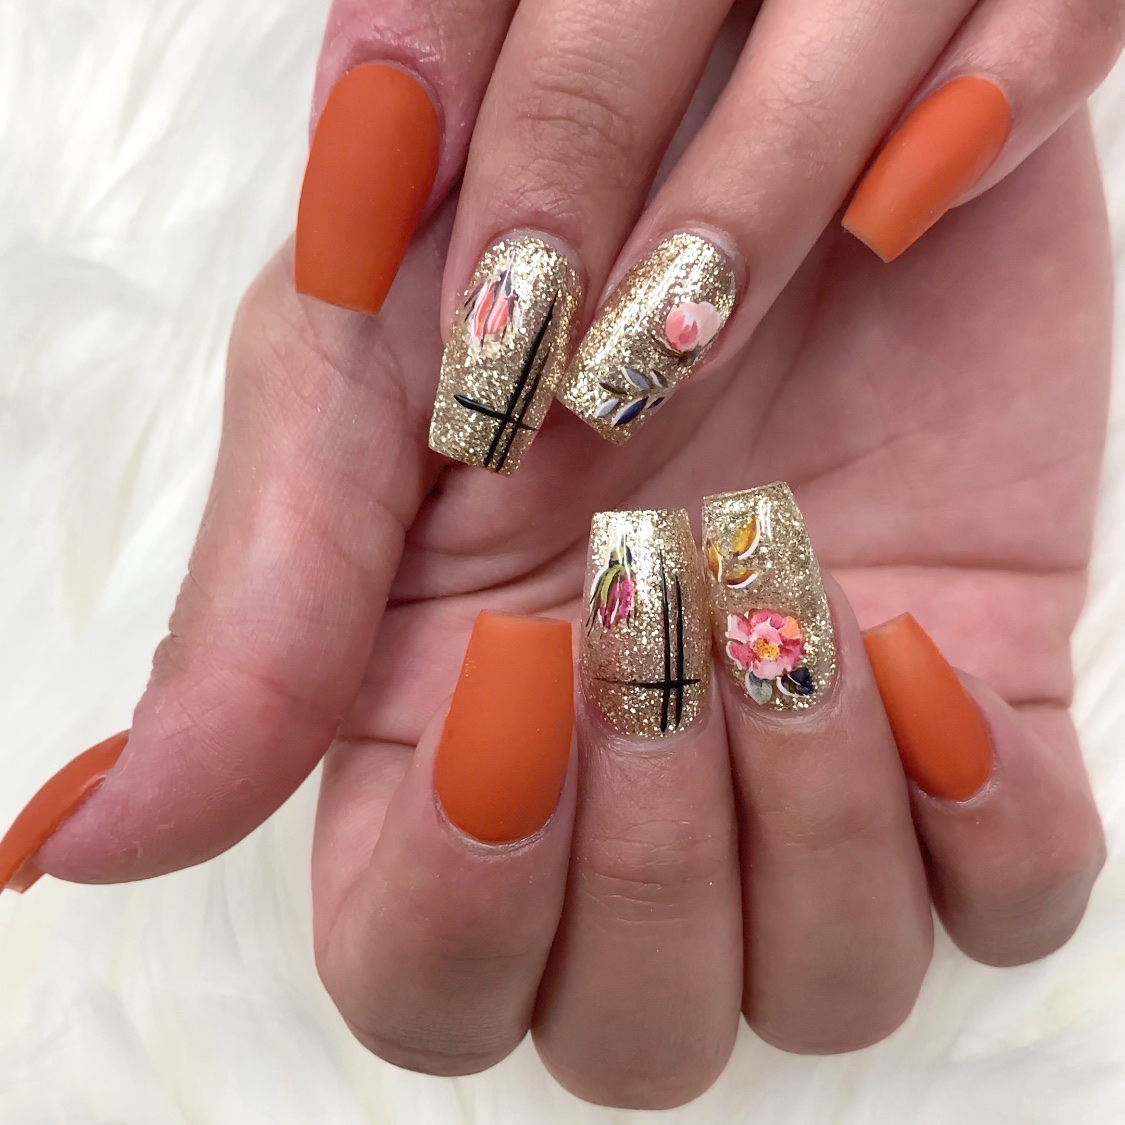 Nails By Andy In Henderson Nv Vagaro In 2020 Pedicure Nail Art Manicure Manicure And Pedicure